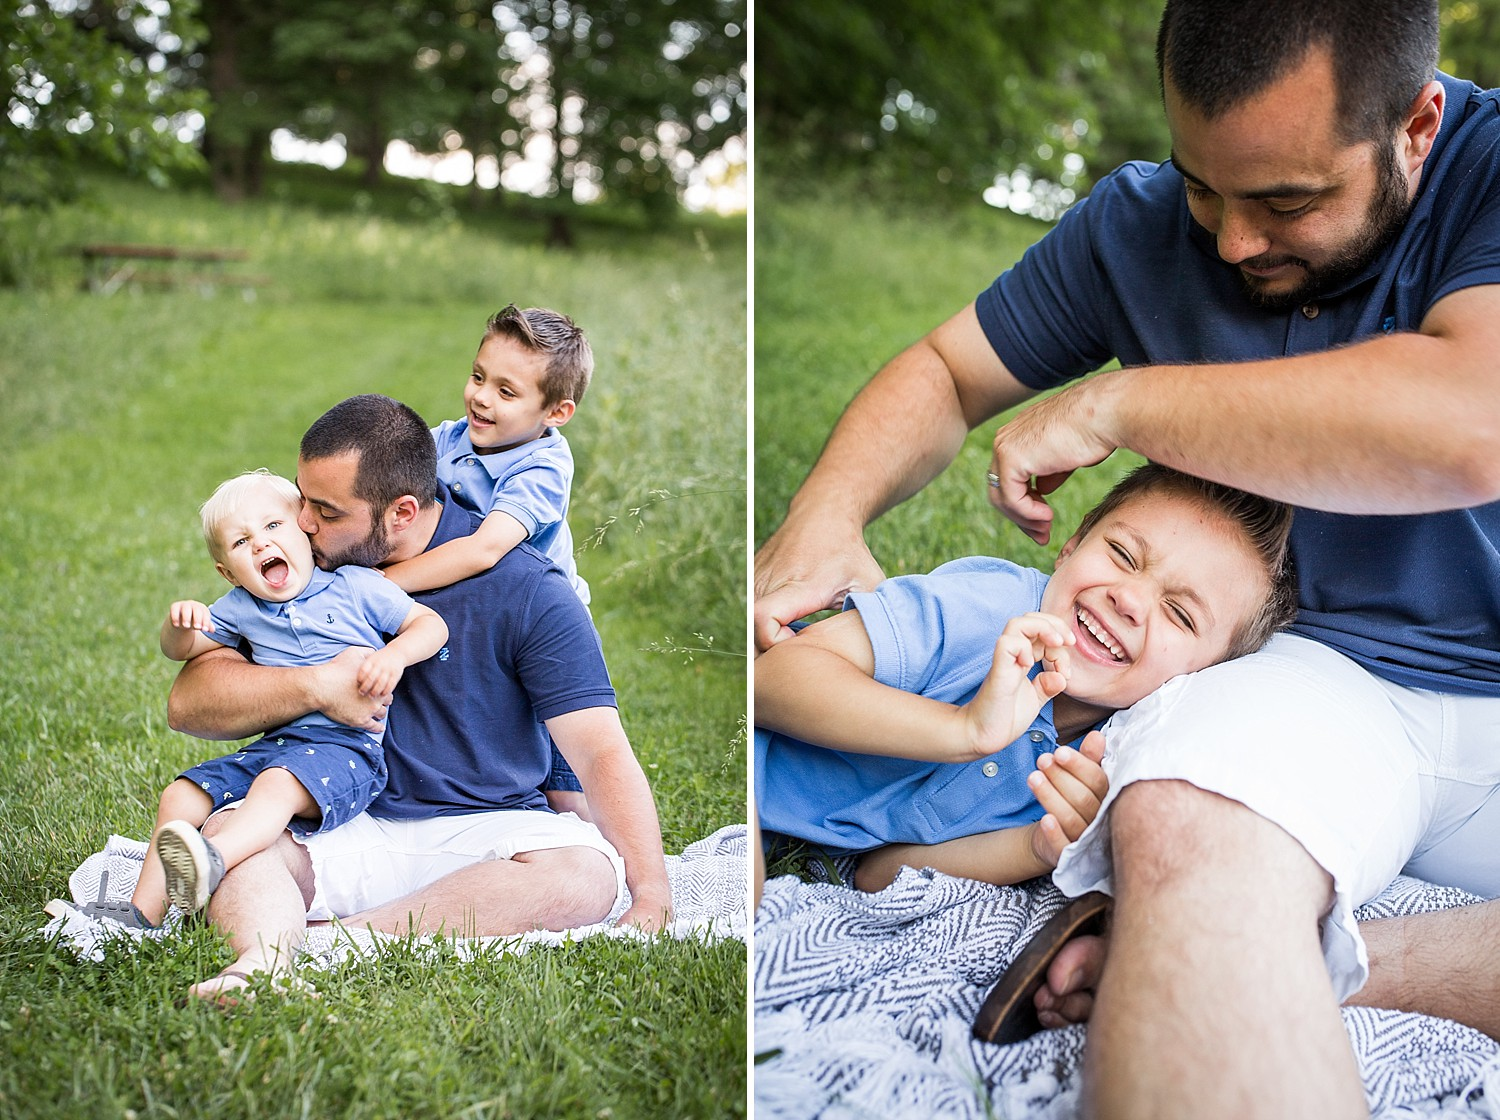 Photo of a dad and his sons laughing and tickling one another outside in the grass.